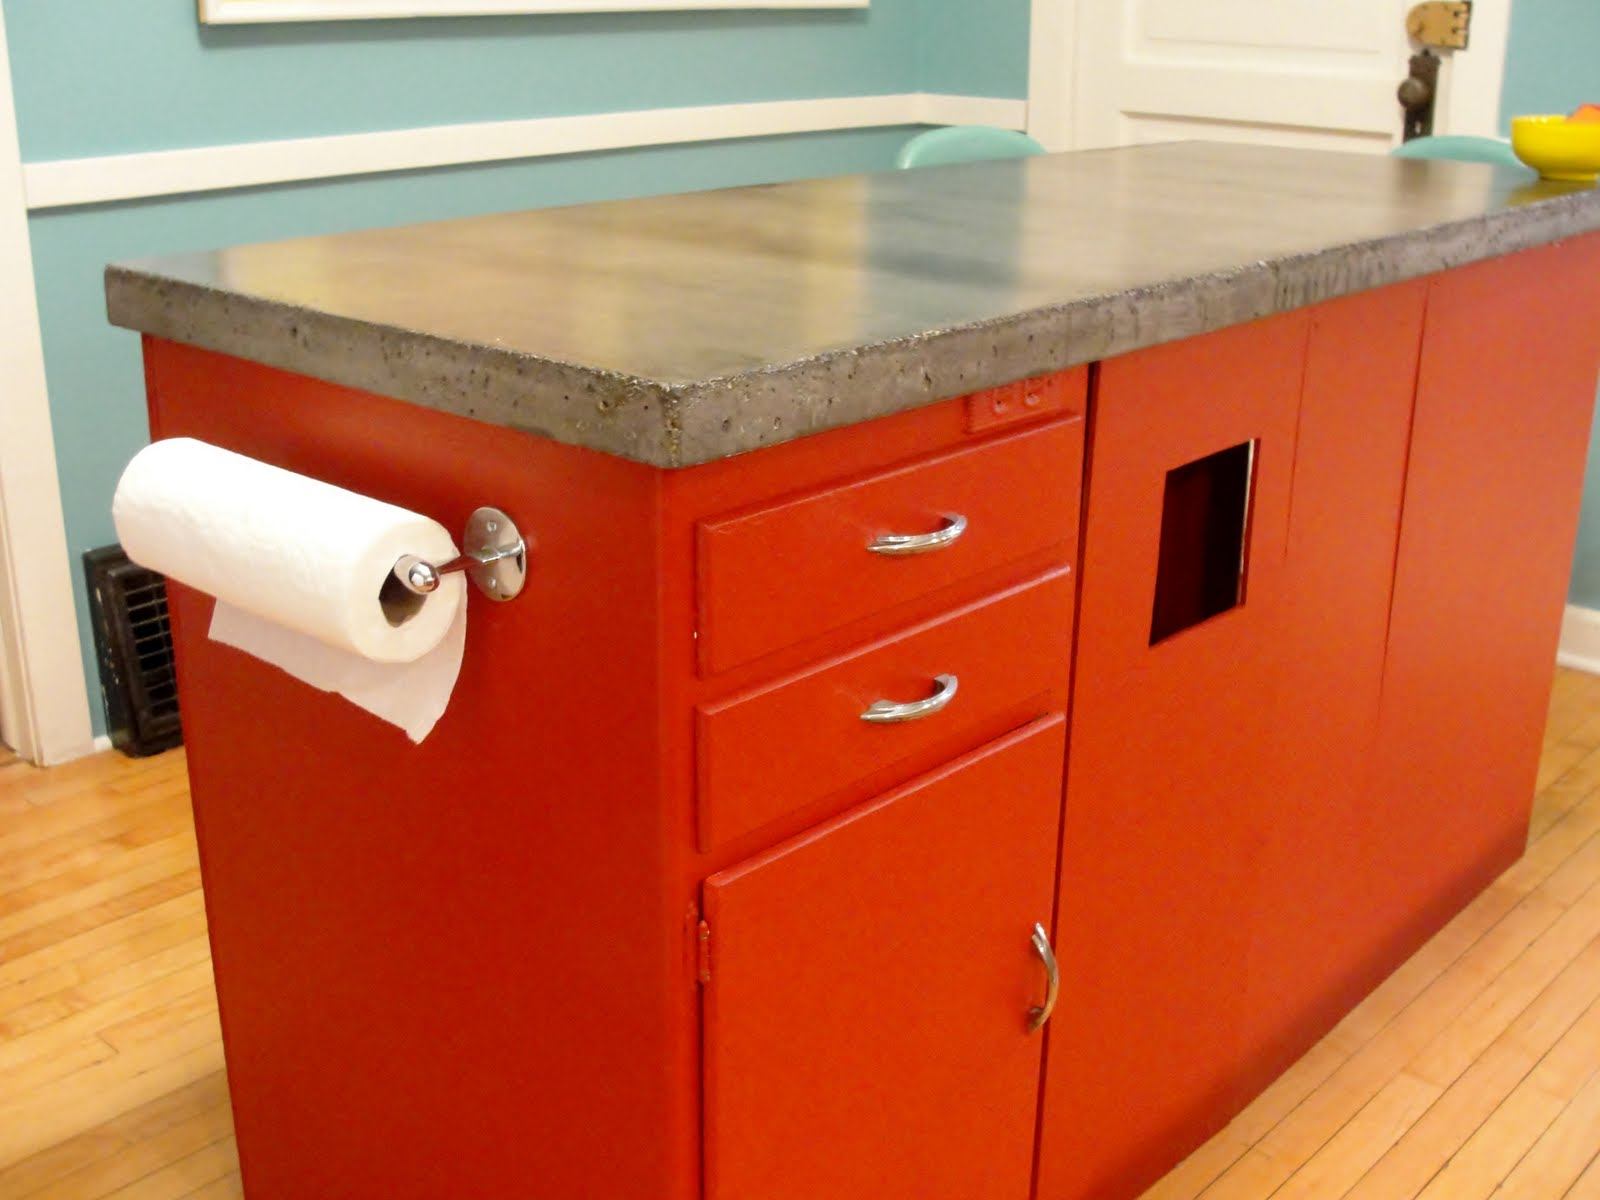 diy concrete countertop for kitchen. Black Bedroom Furniture Sets. Home Design Ideas